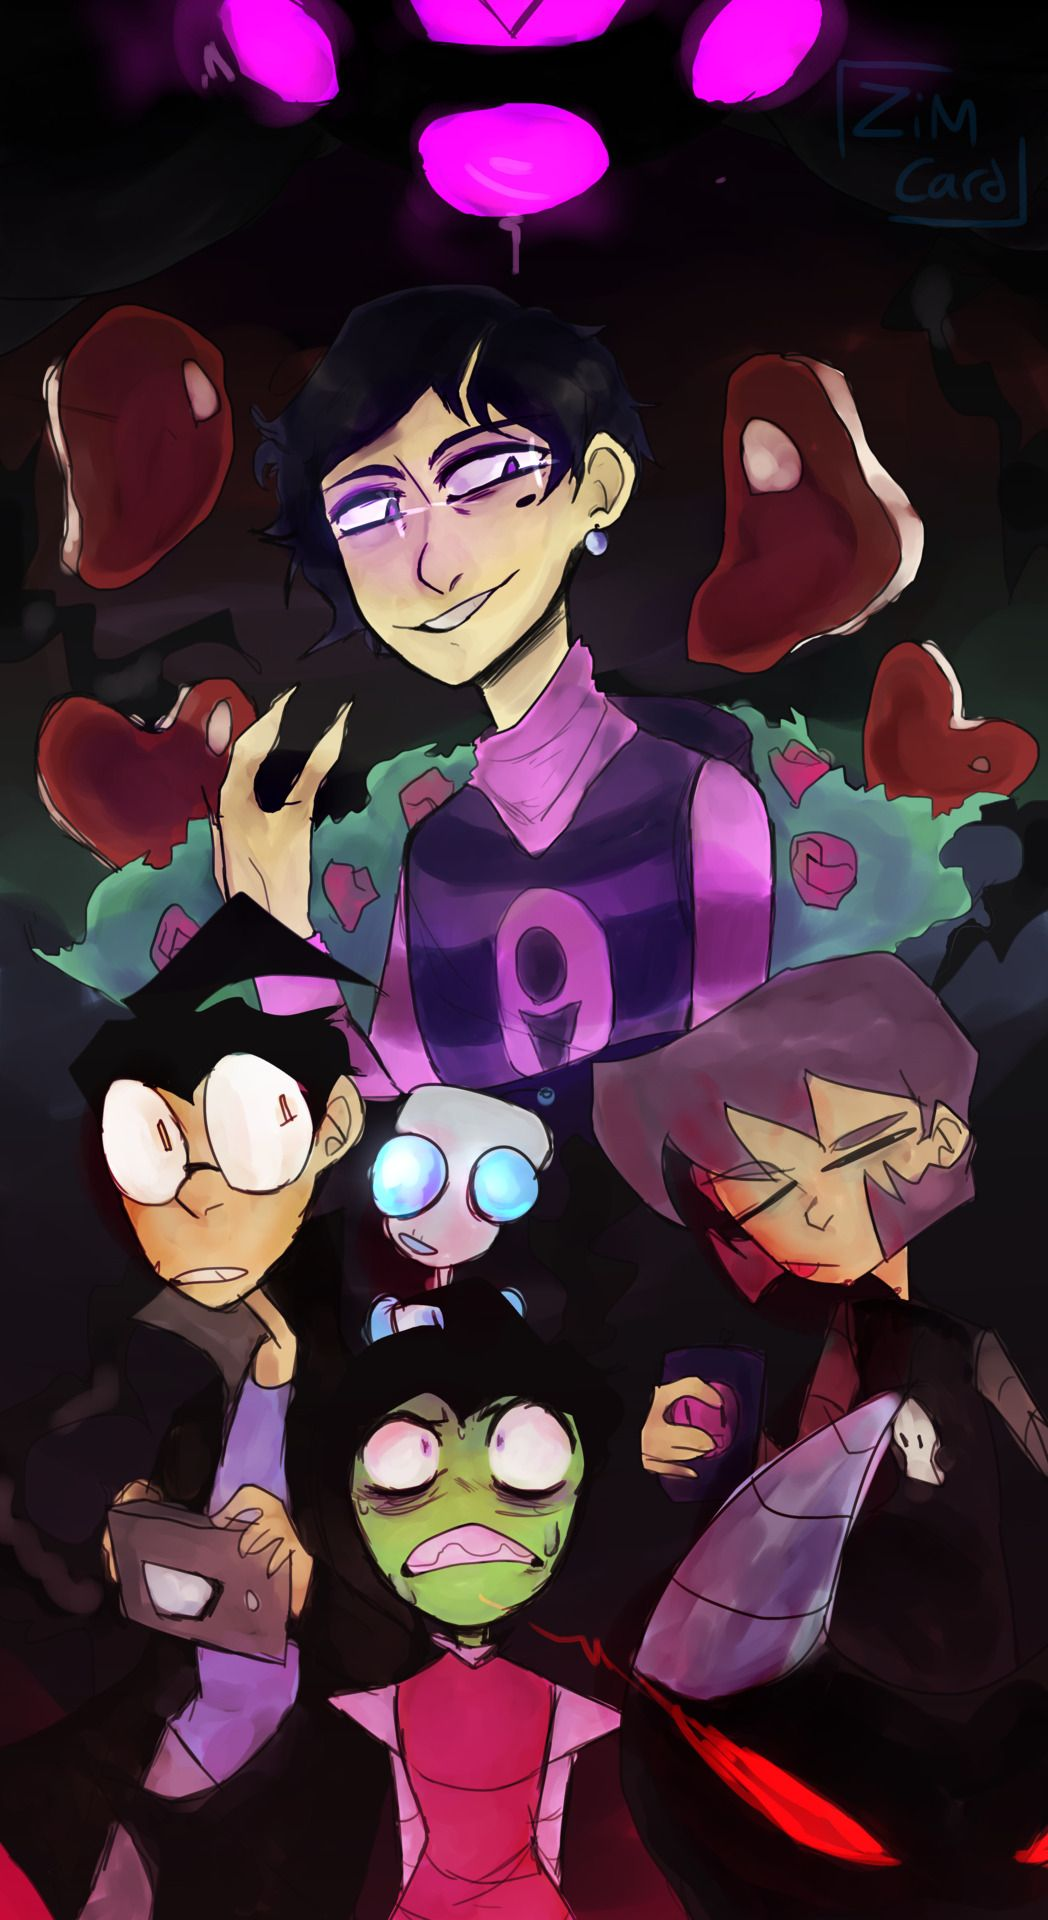 You know that new girl? Yeah, she's Hideous. Invader zim